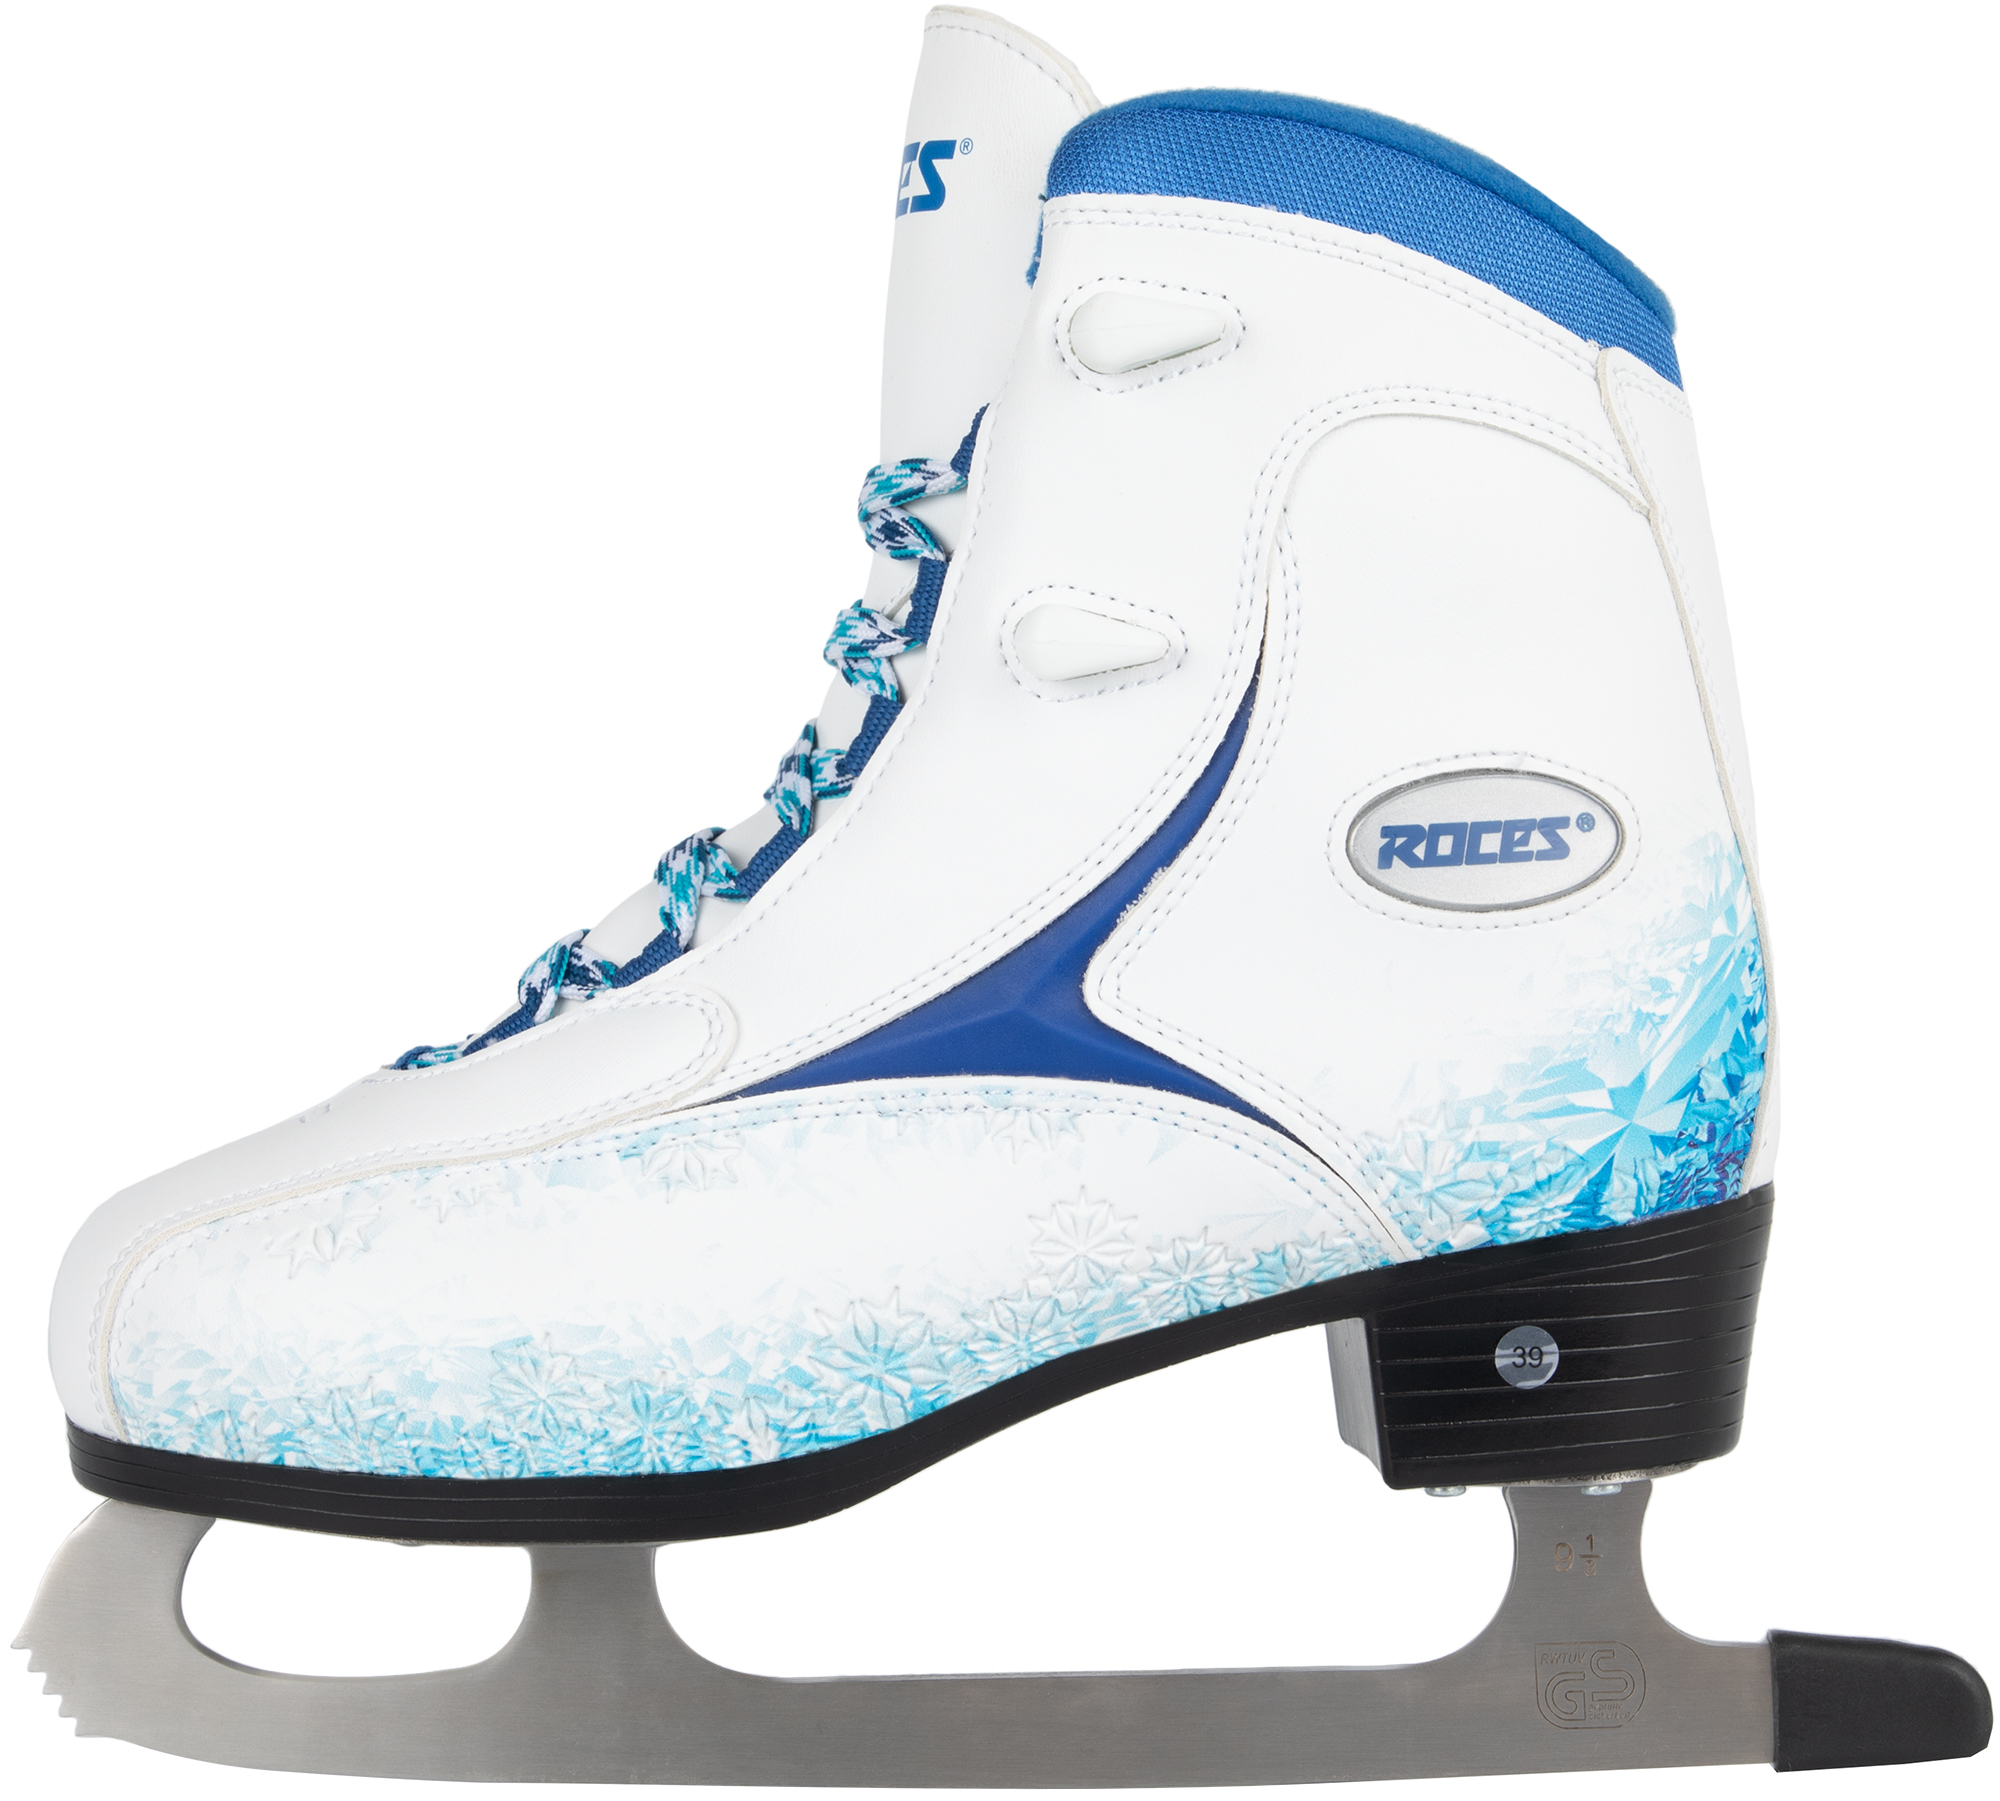 Roces RFG2 (взрослые) roces roces wooly 002 взрослые